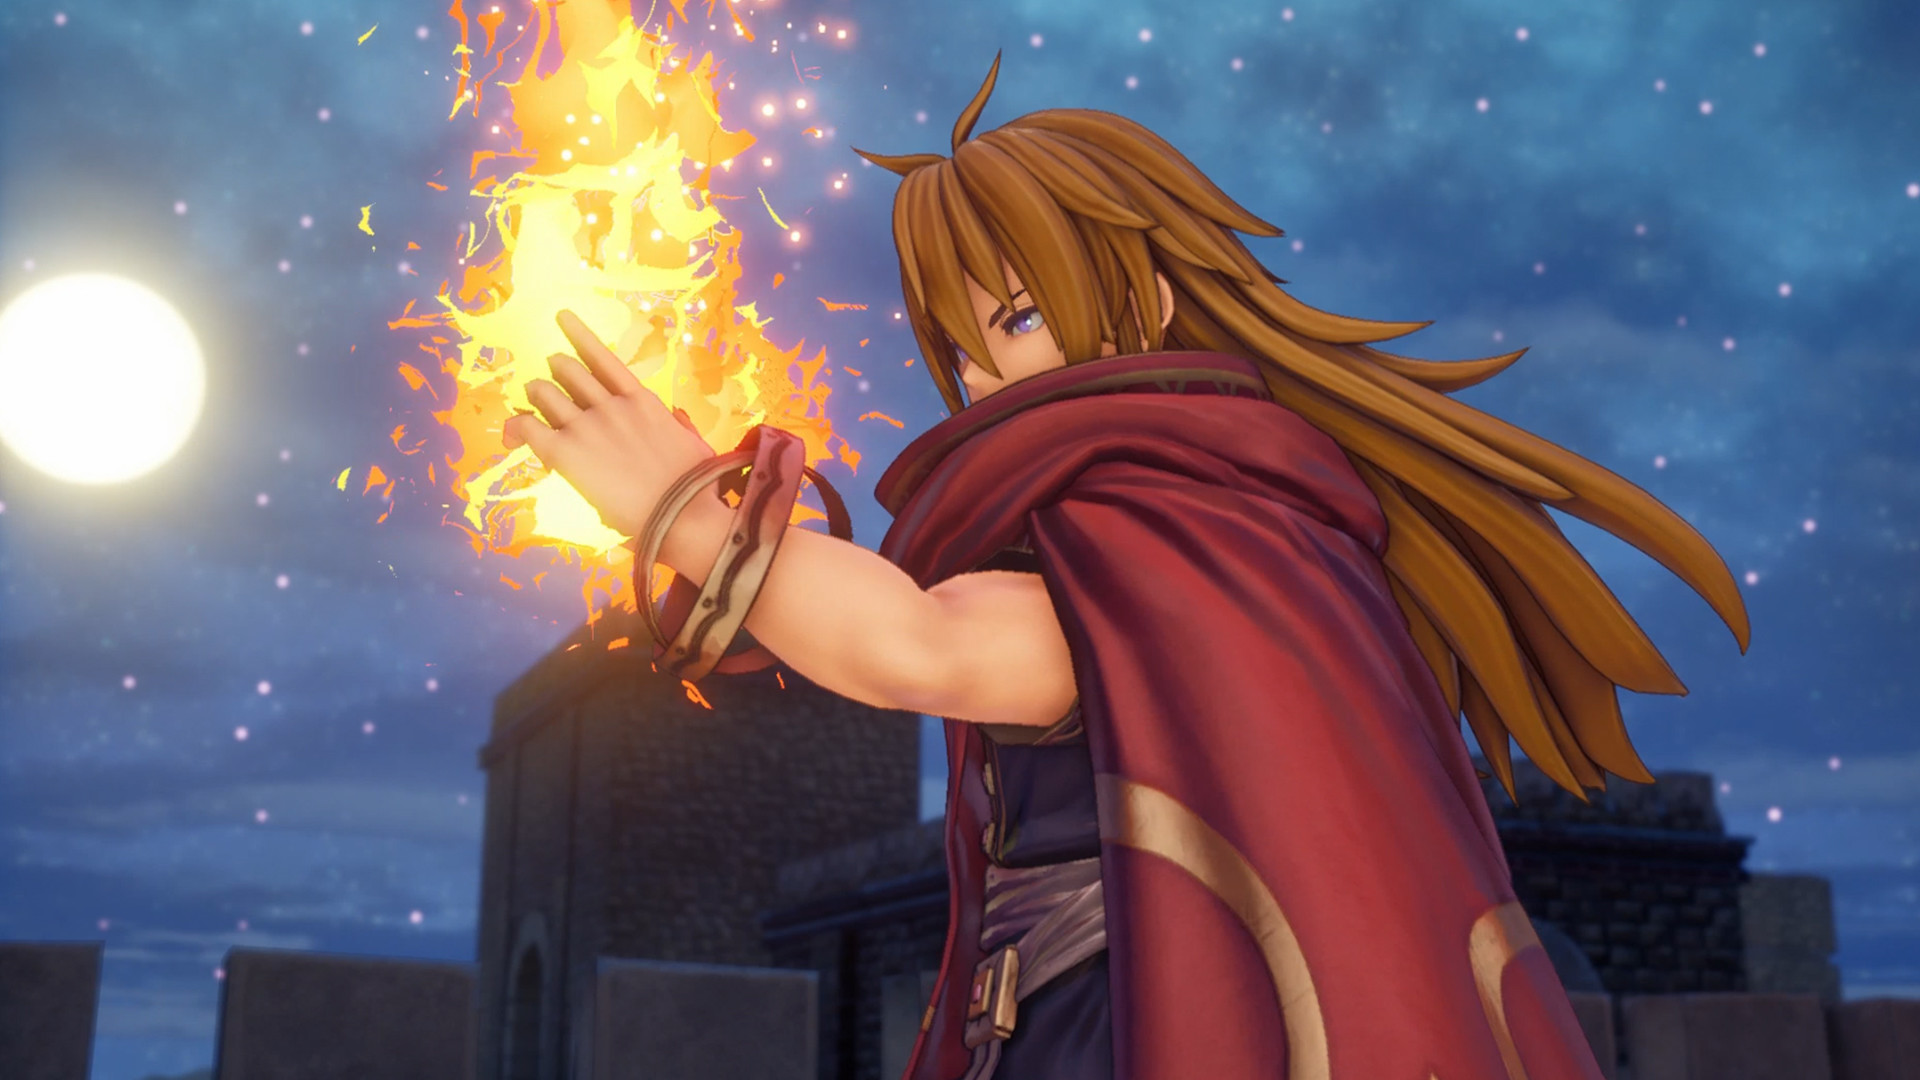 Best Ps4 games of 2020 - Trials of Mana